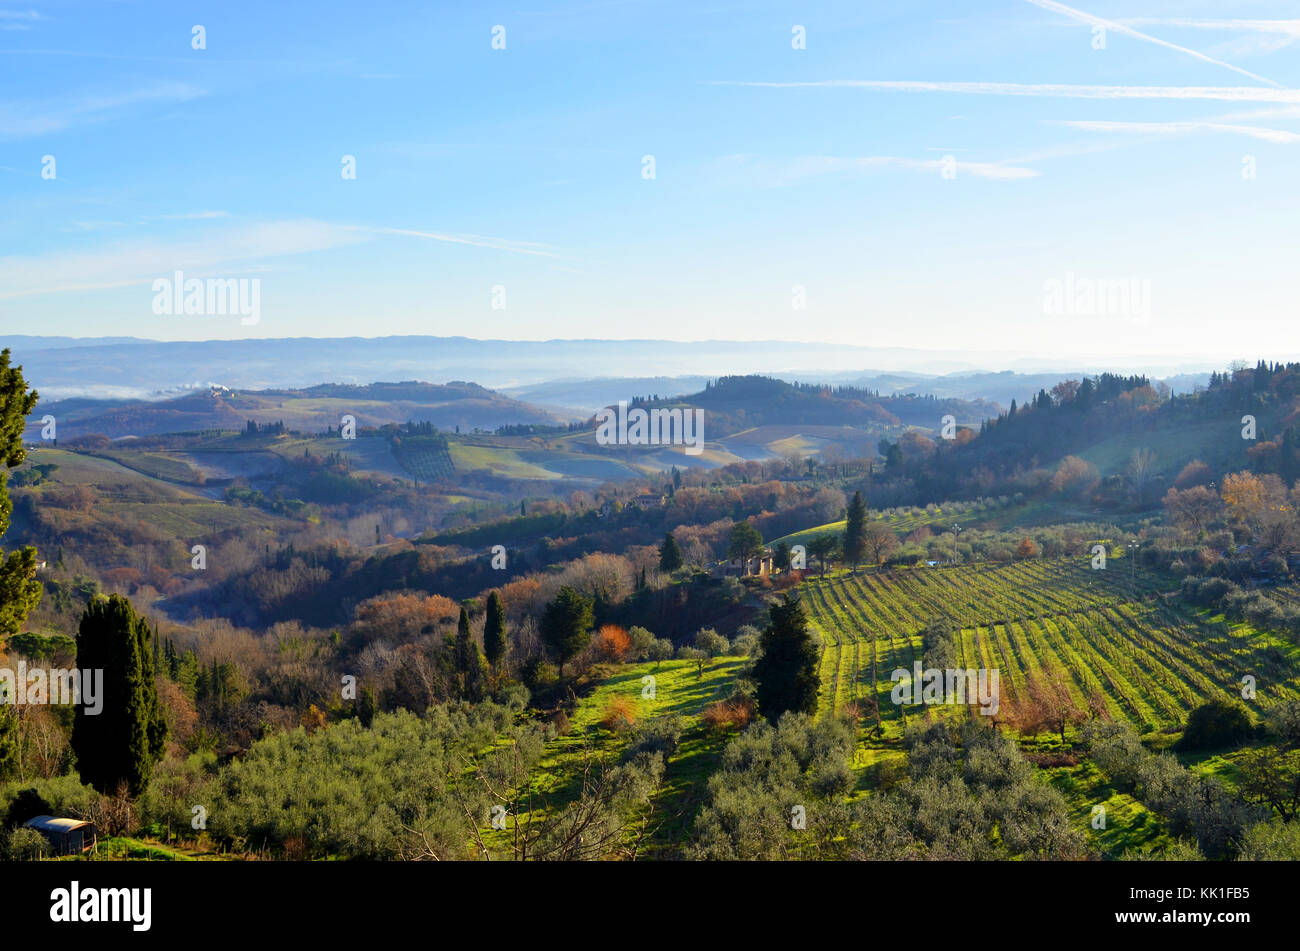 Landscape view of San Gimignano in the province of Siena, Tuscany.  Countryside of the medieval hill town southwest - Stock Image